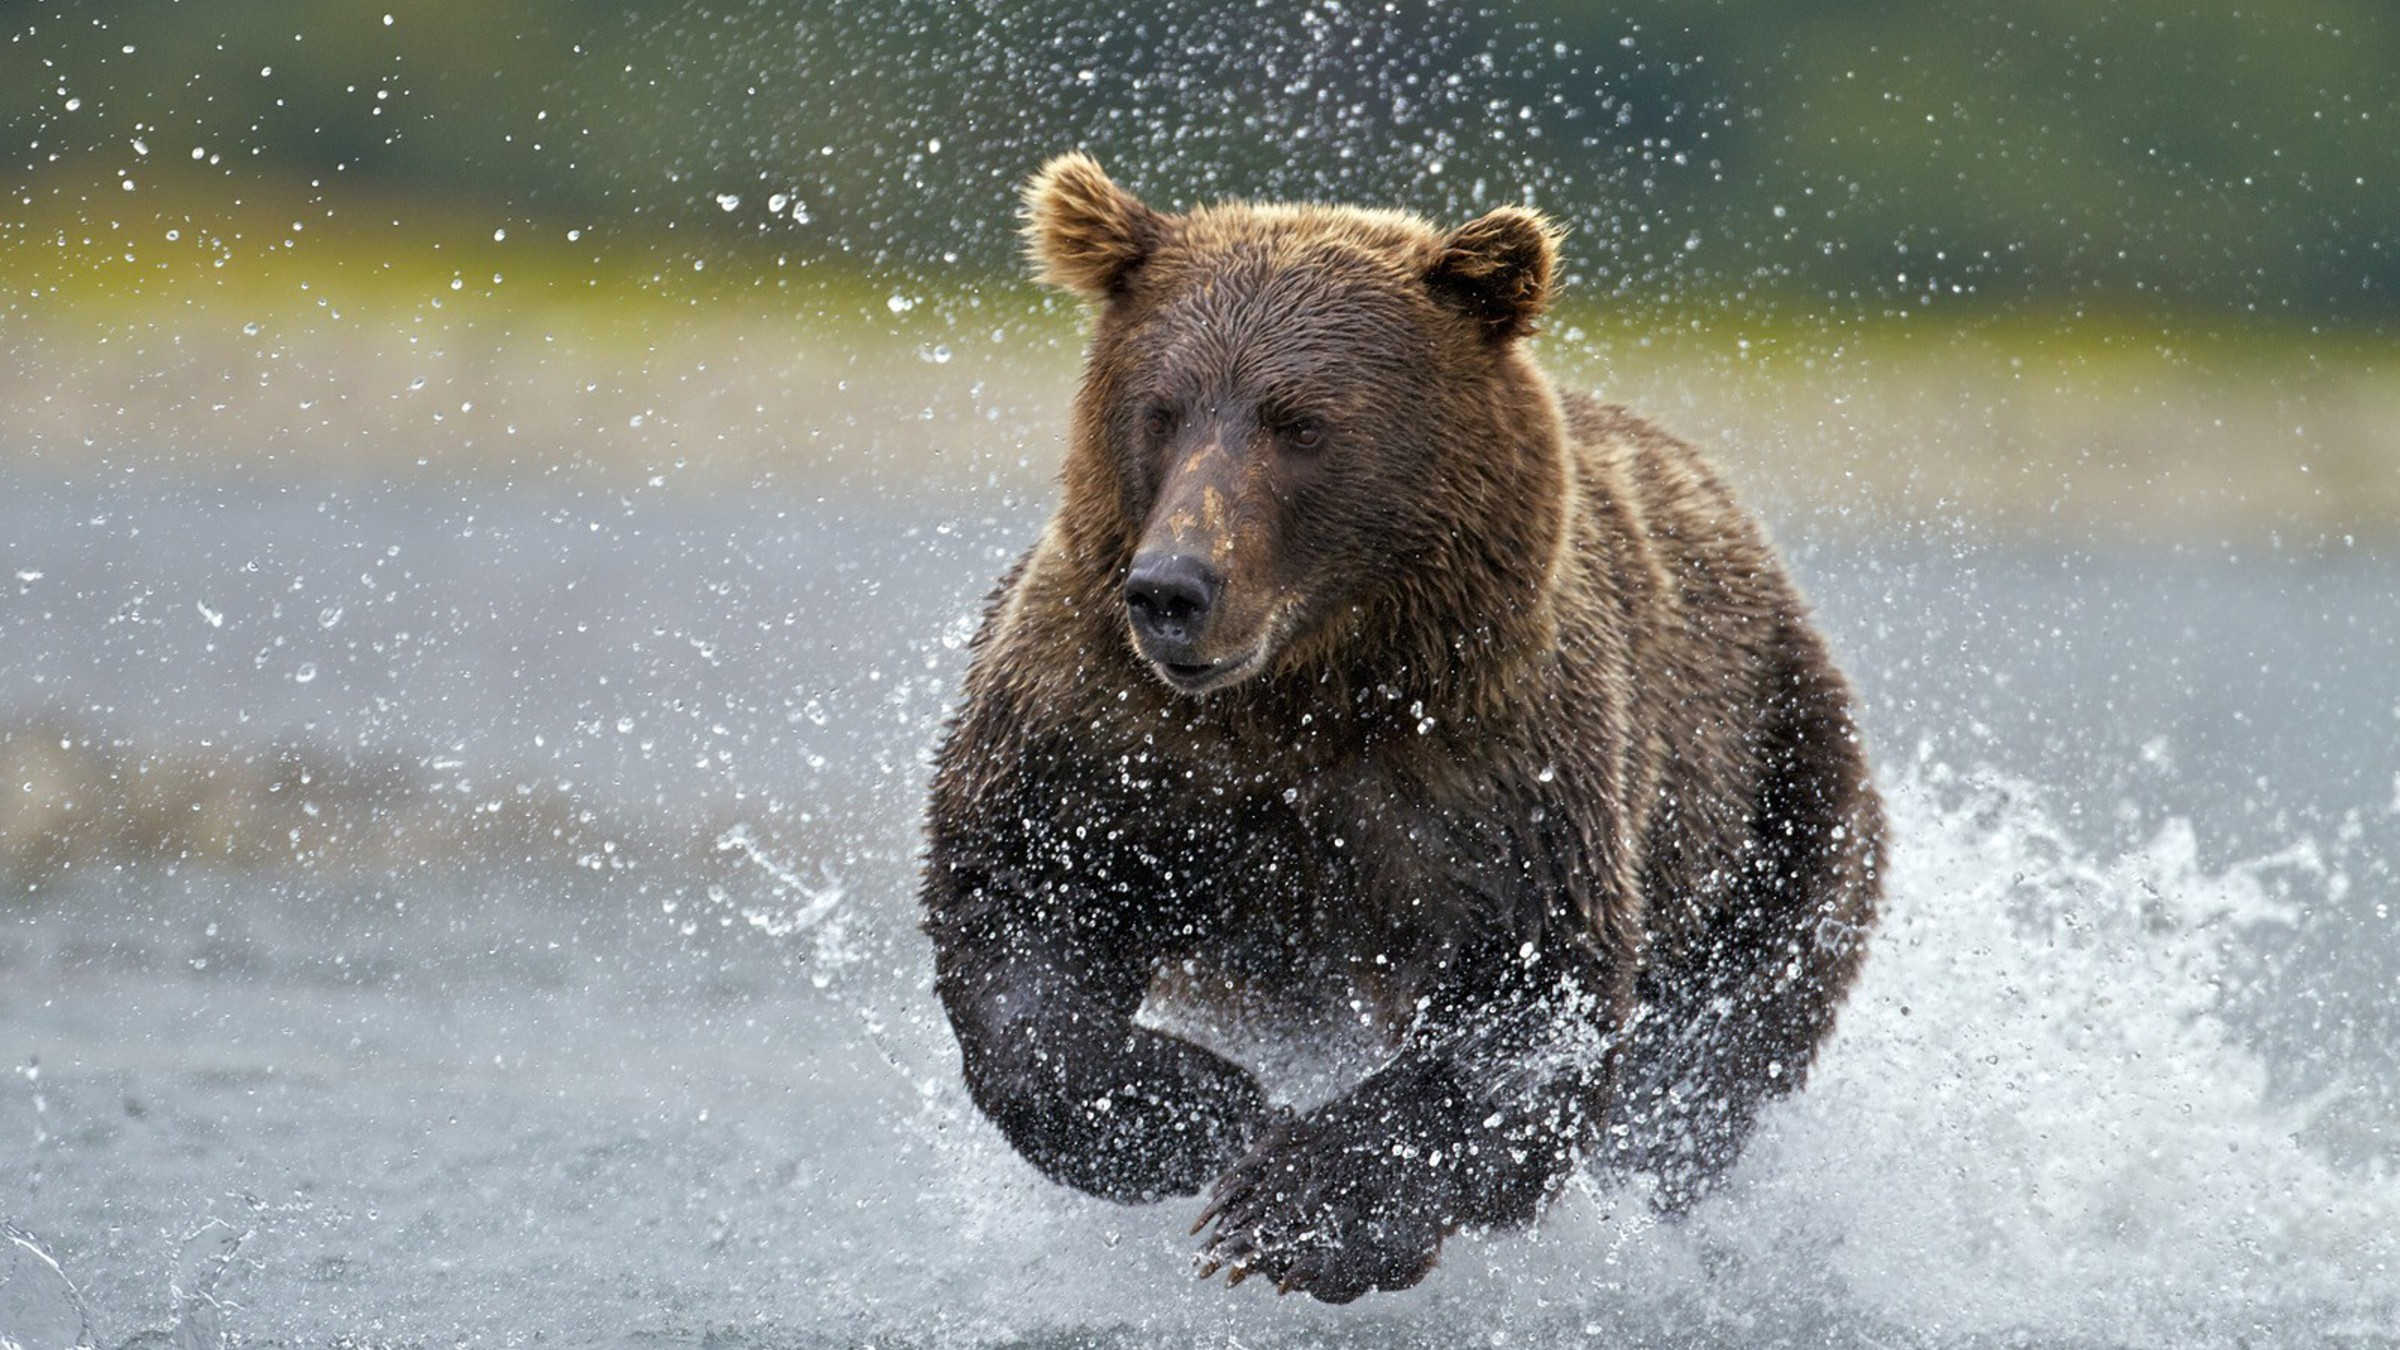 alaska fishing national park brown bear wallpaper | allwallpaper.in